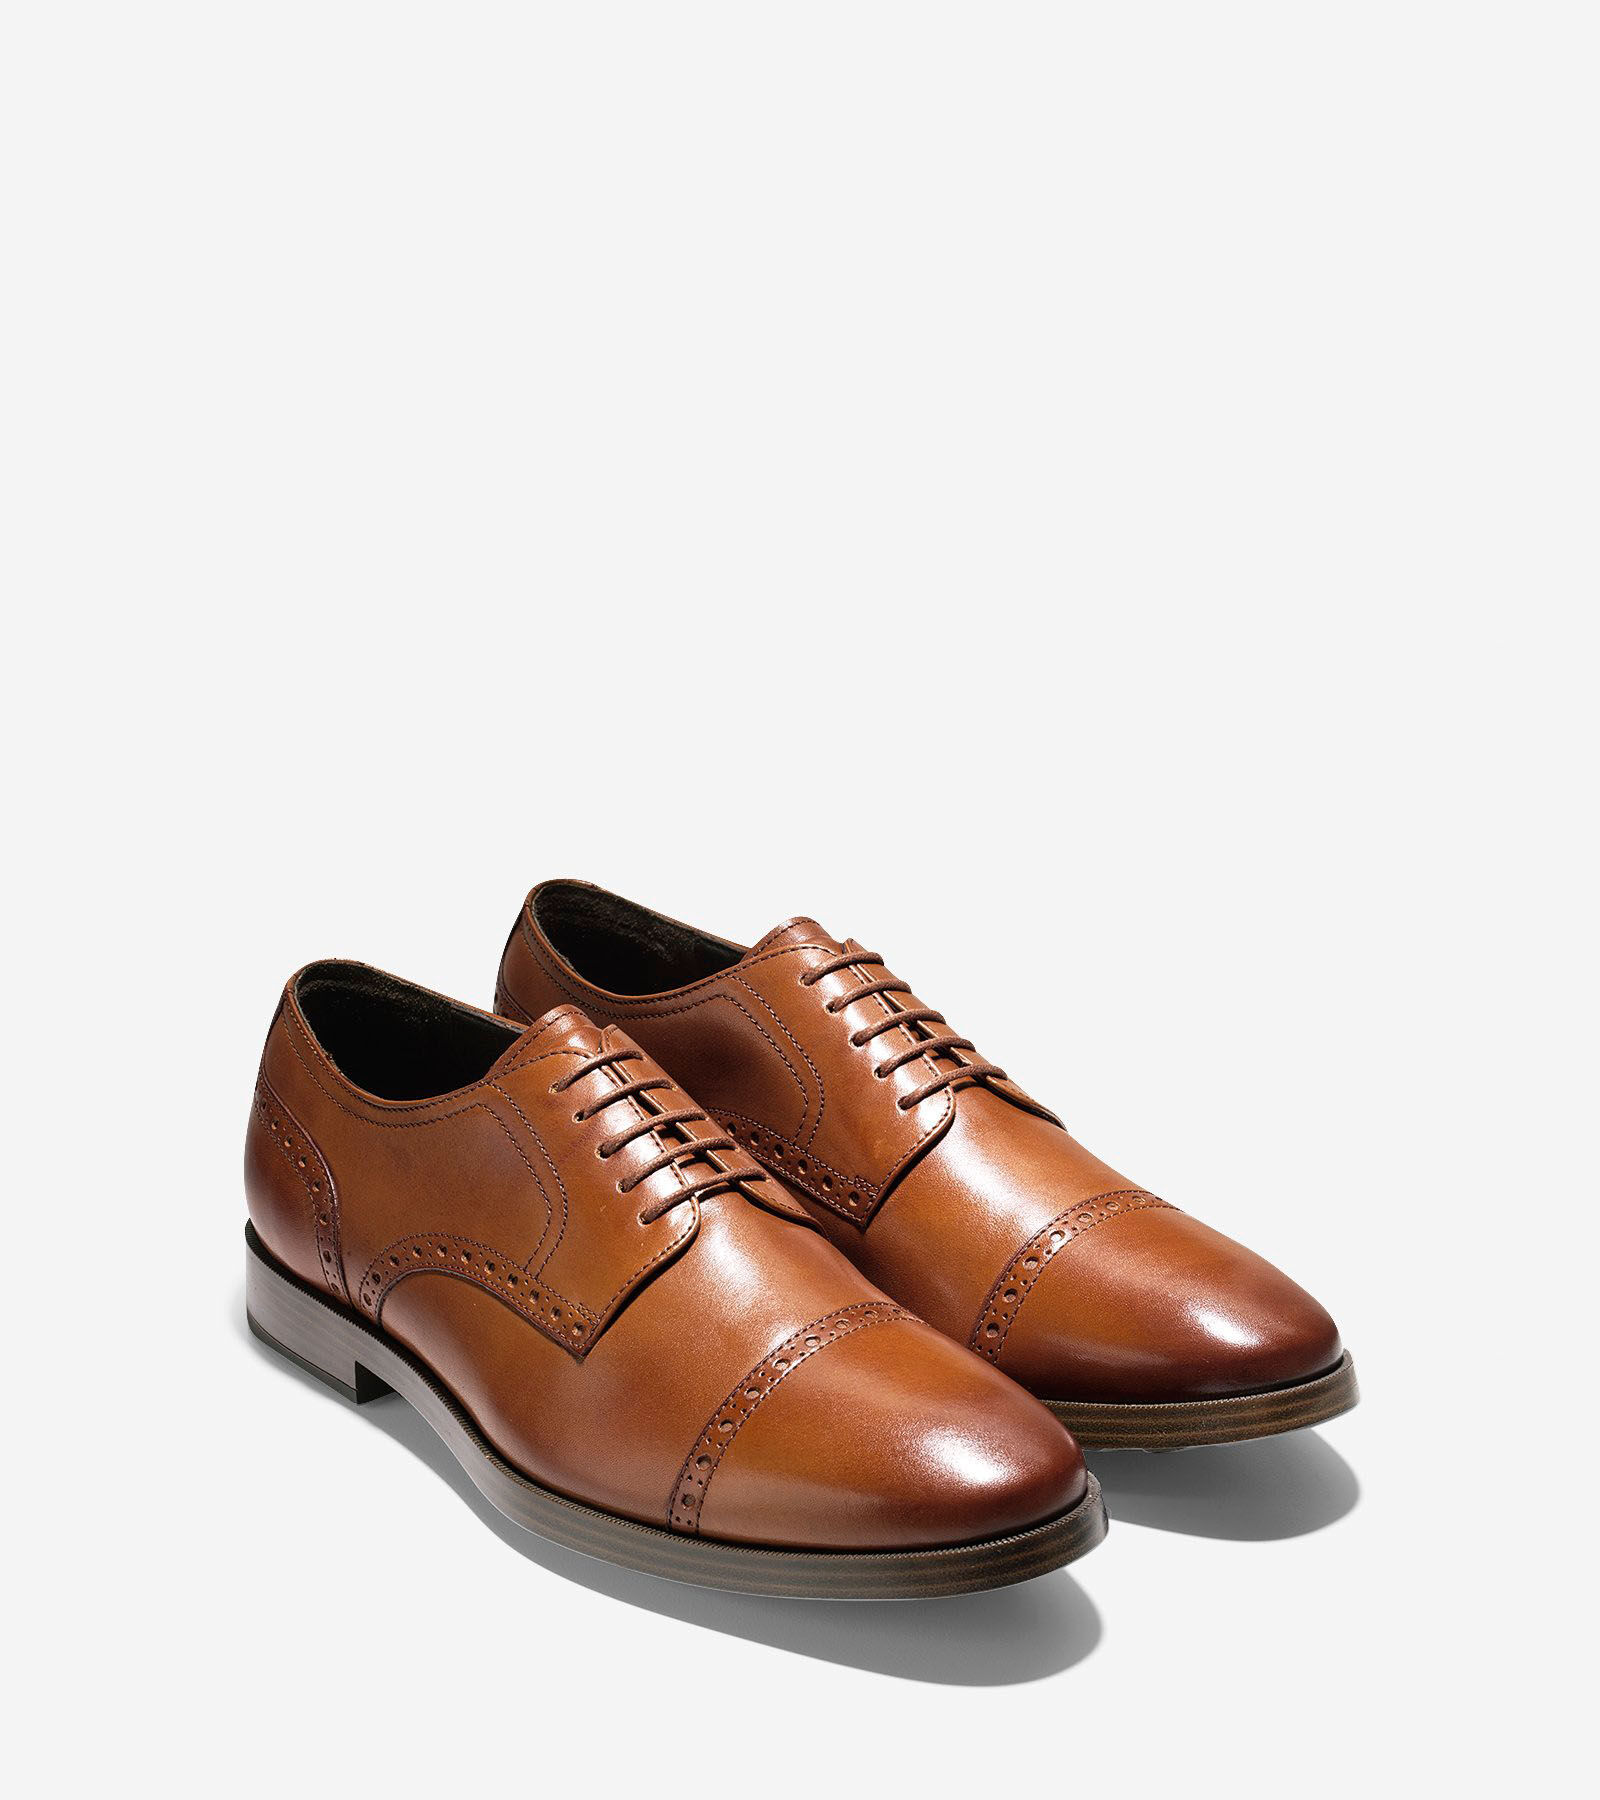 ... Jefferson Grand Cap Toe Oxford; Jefferson Grand Cap Toe Oxford. # colehaan